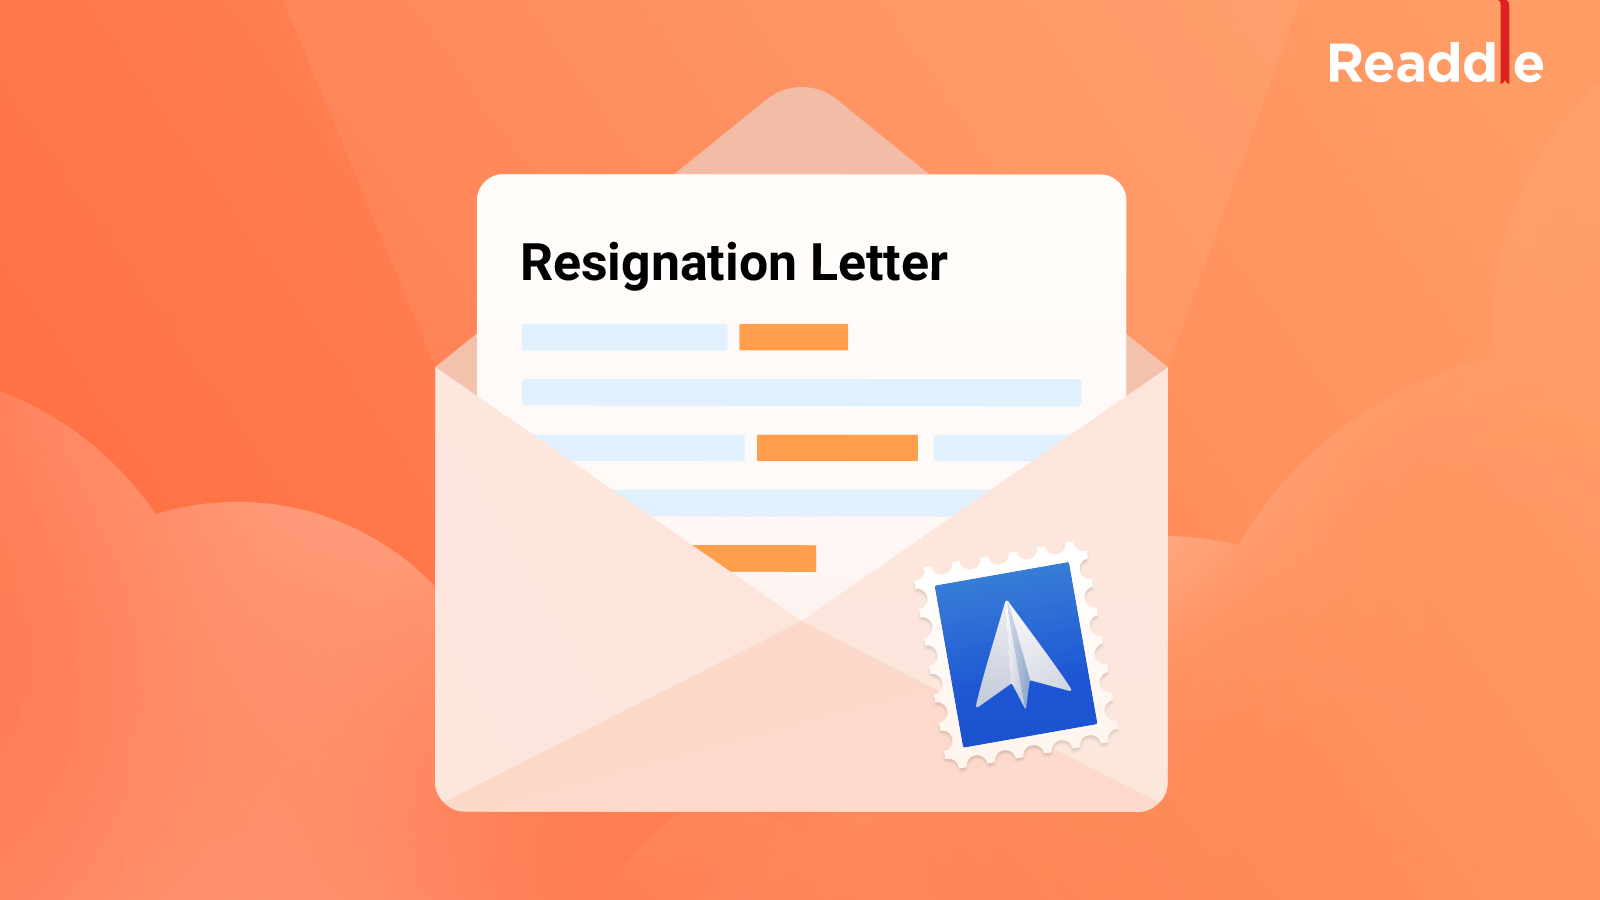 Resignation Letter Samples 2 Week Notice from d3pbdh1dmixop.cloudfront.net